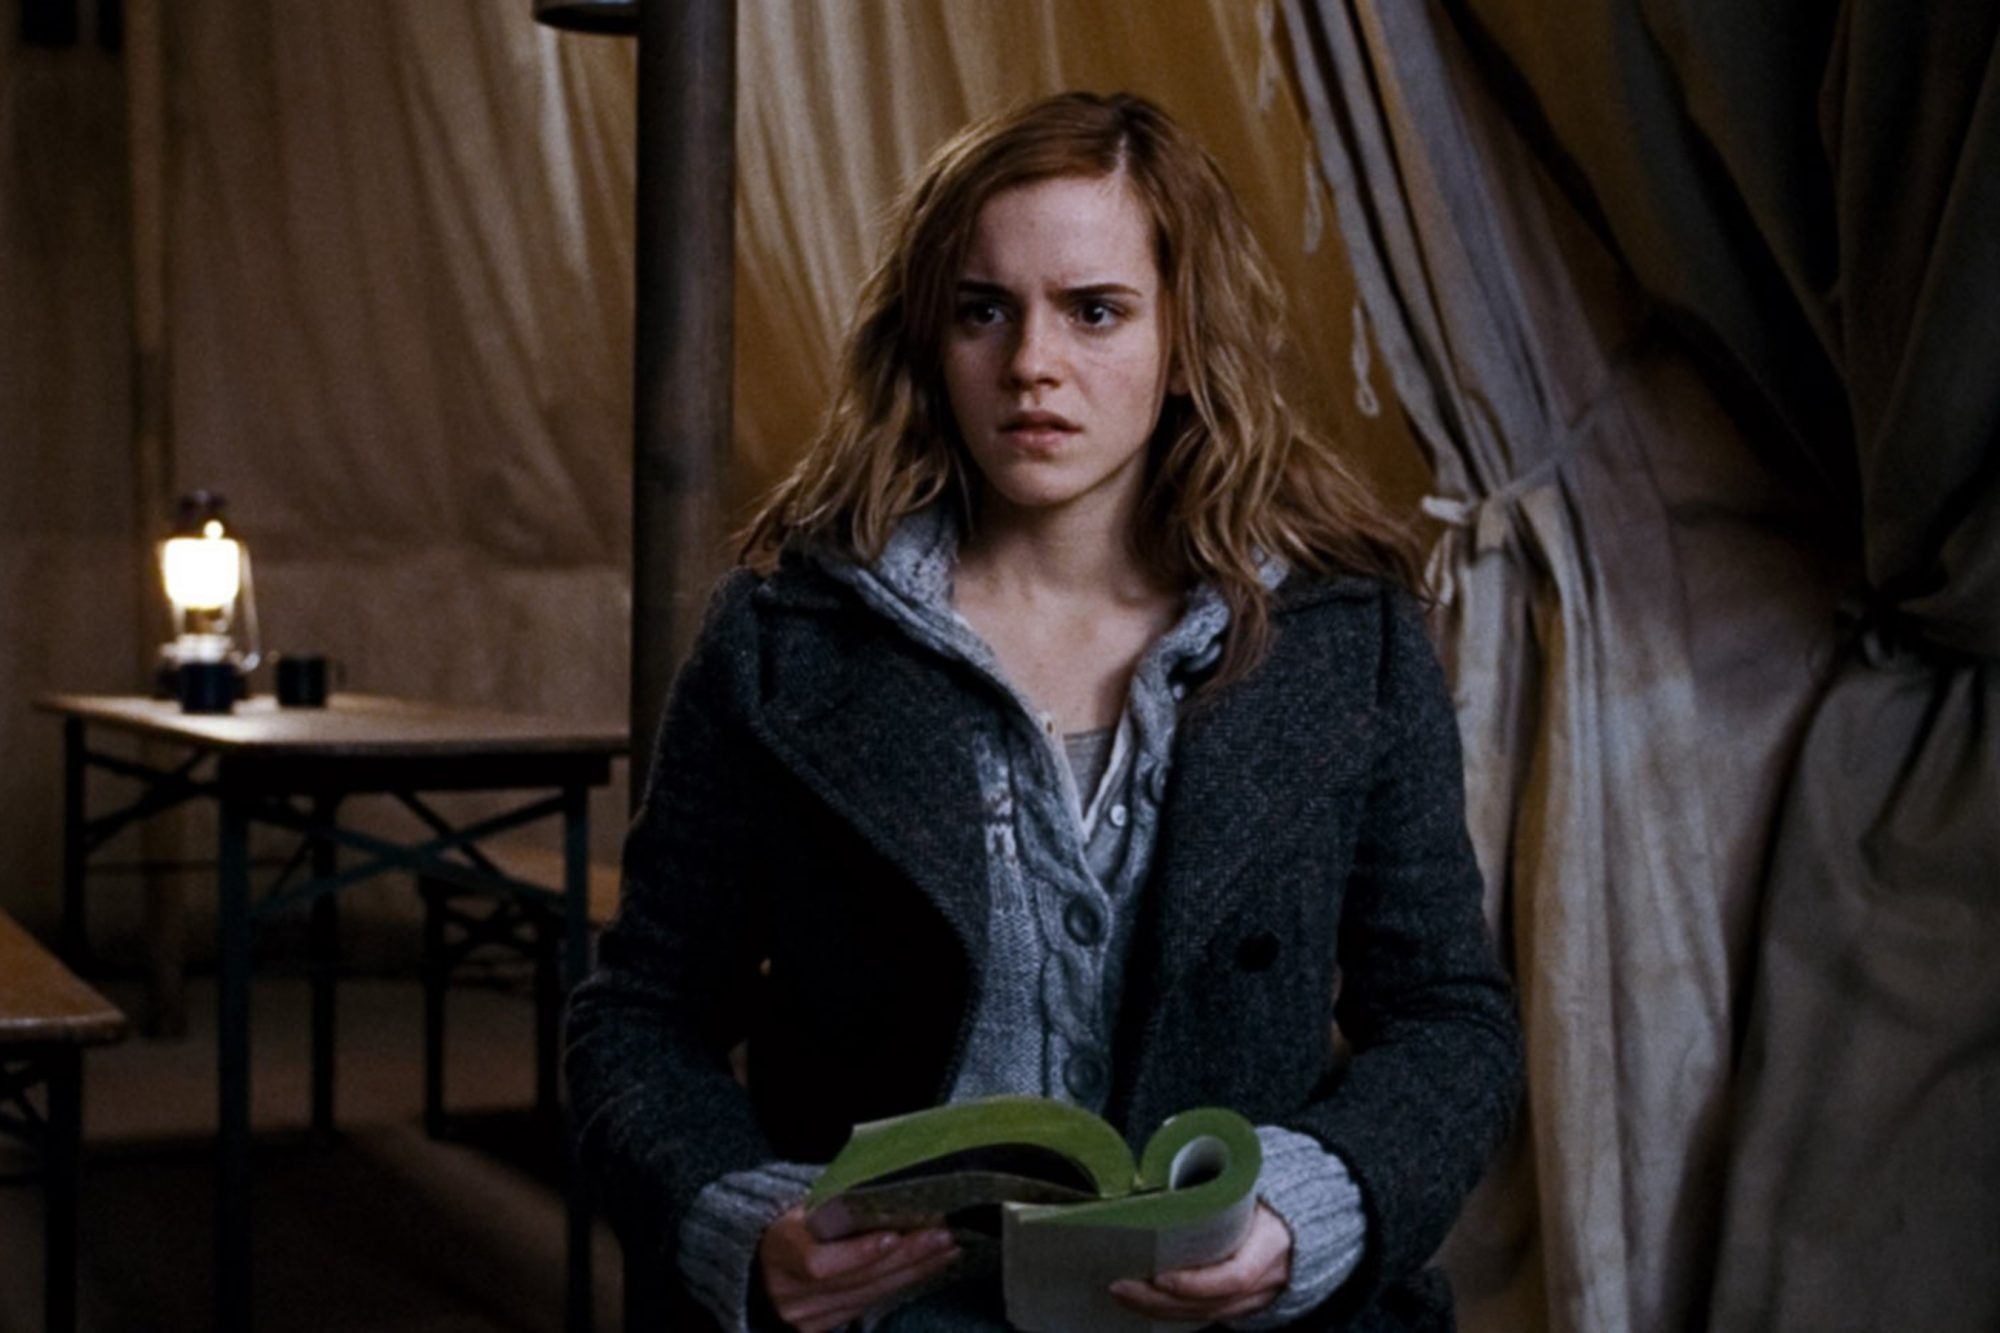 HARRY POTTER AND THE DEATHLY HALLOWS: PART 1, Emma Watson, 2010. ©2010 Warner Bros. Ent. Harry Potte